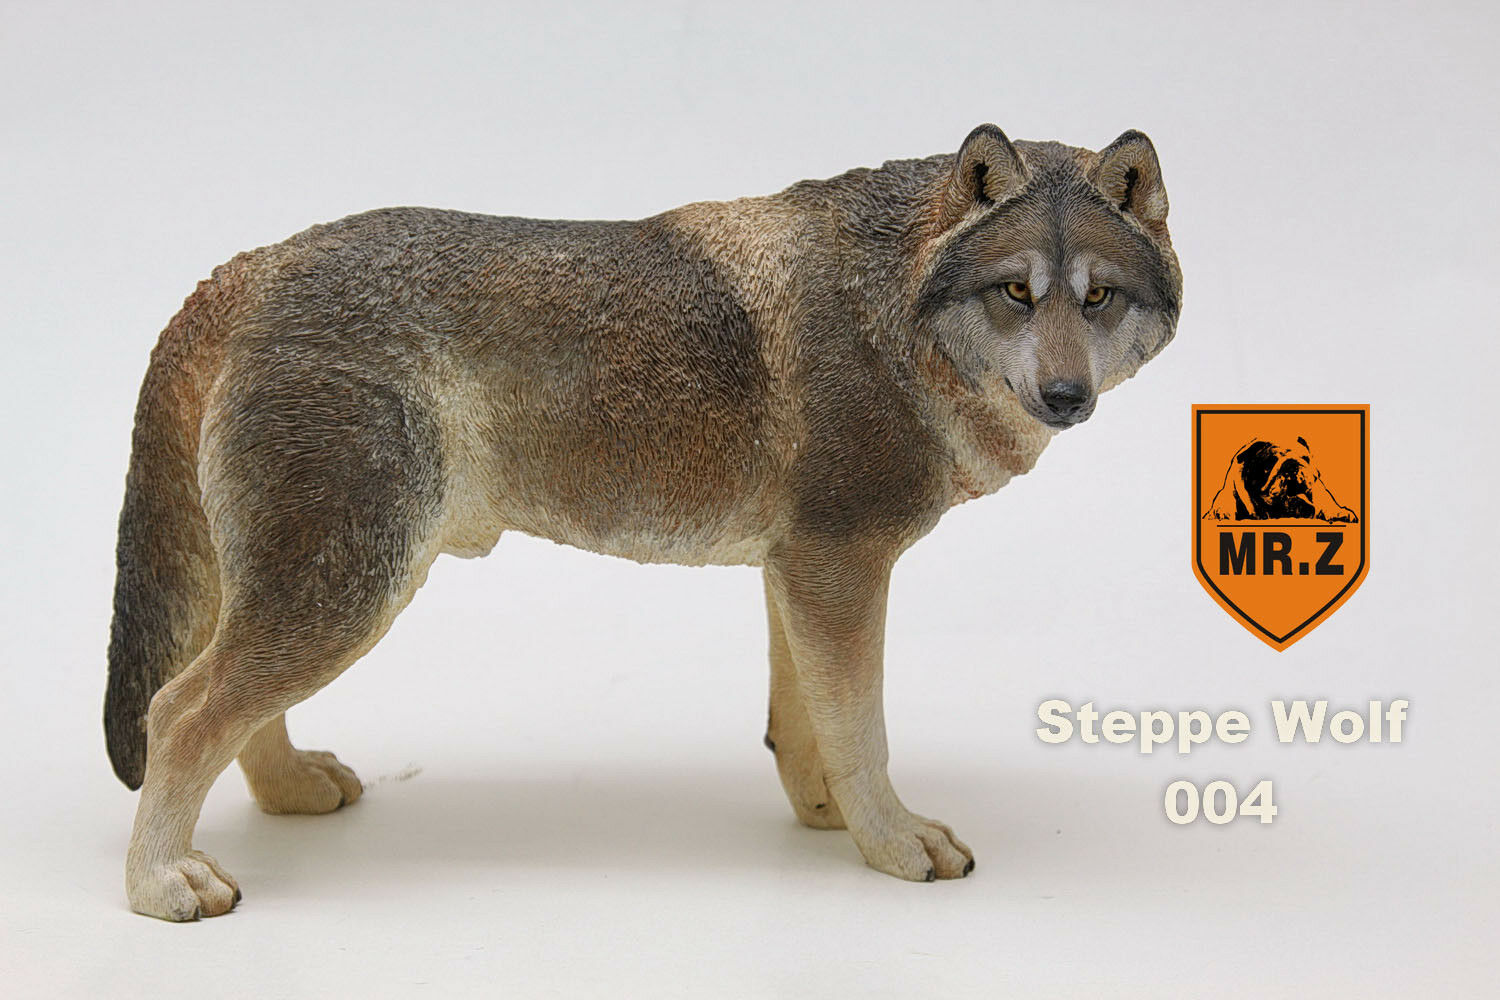 1 6 Mr.Z NO.7 Steppe Wolf 004 Animal Toy Siberian Wolf Model